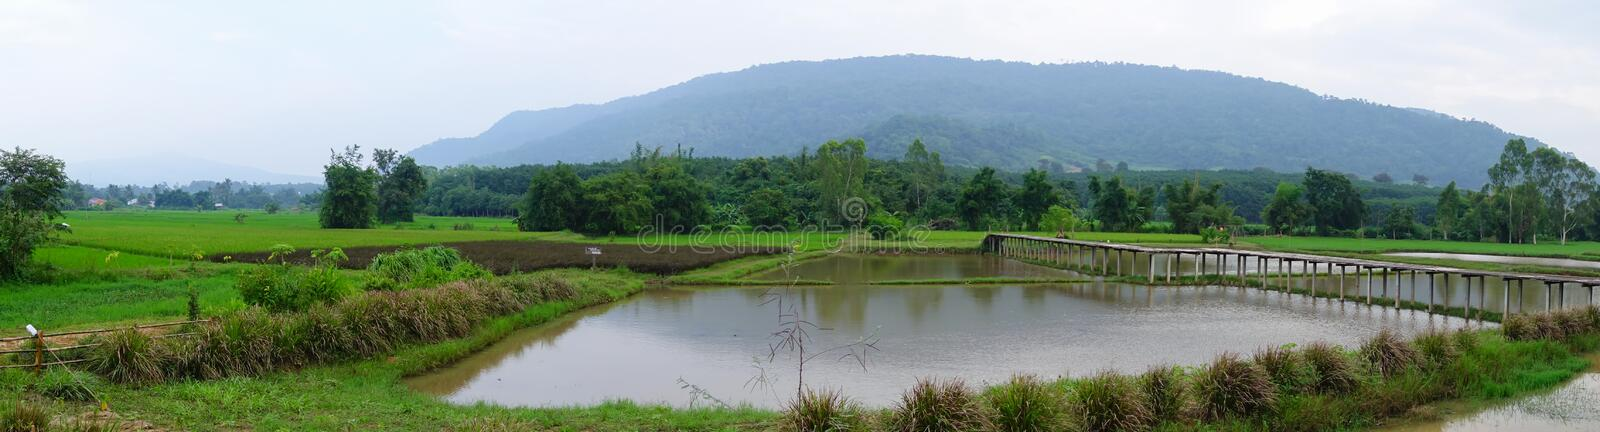 Panorama lush green rice fields of the countryside royalty free stock photos